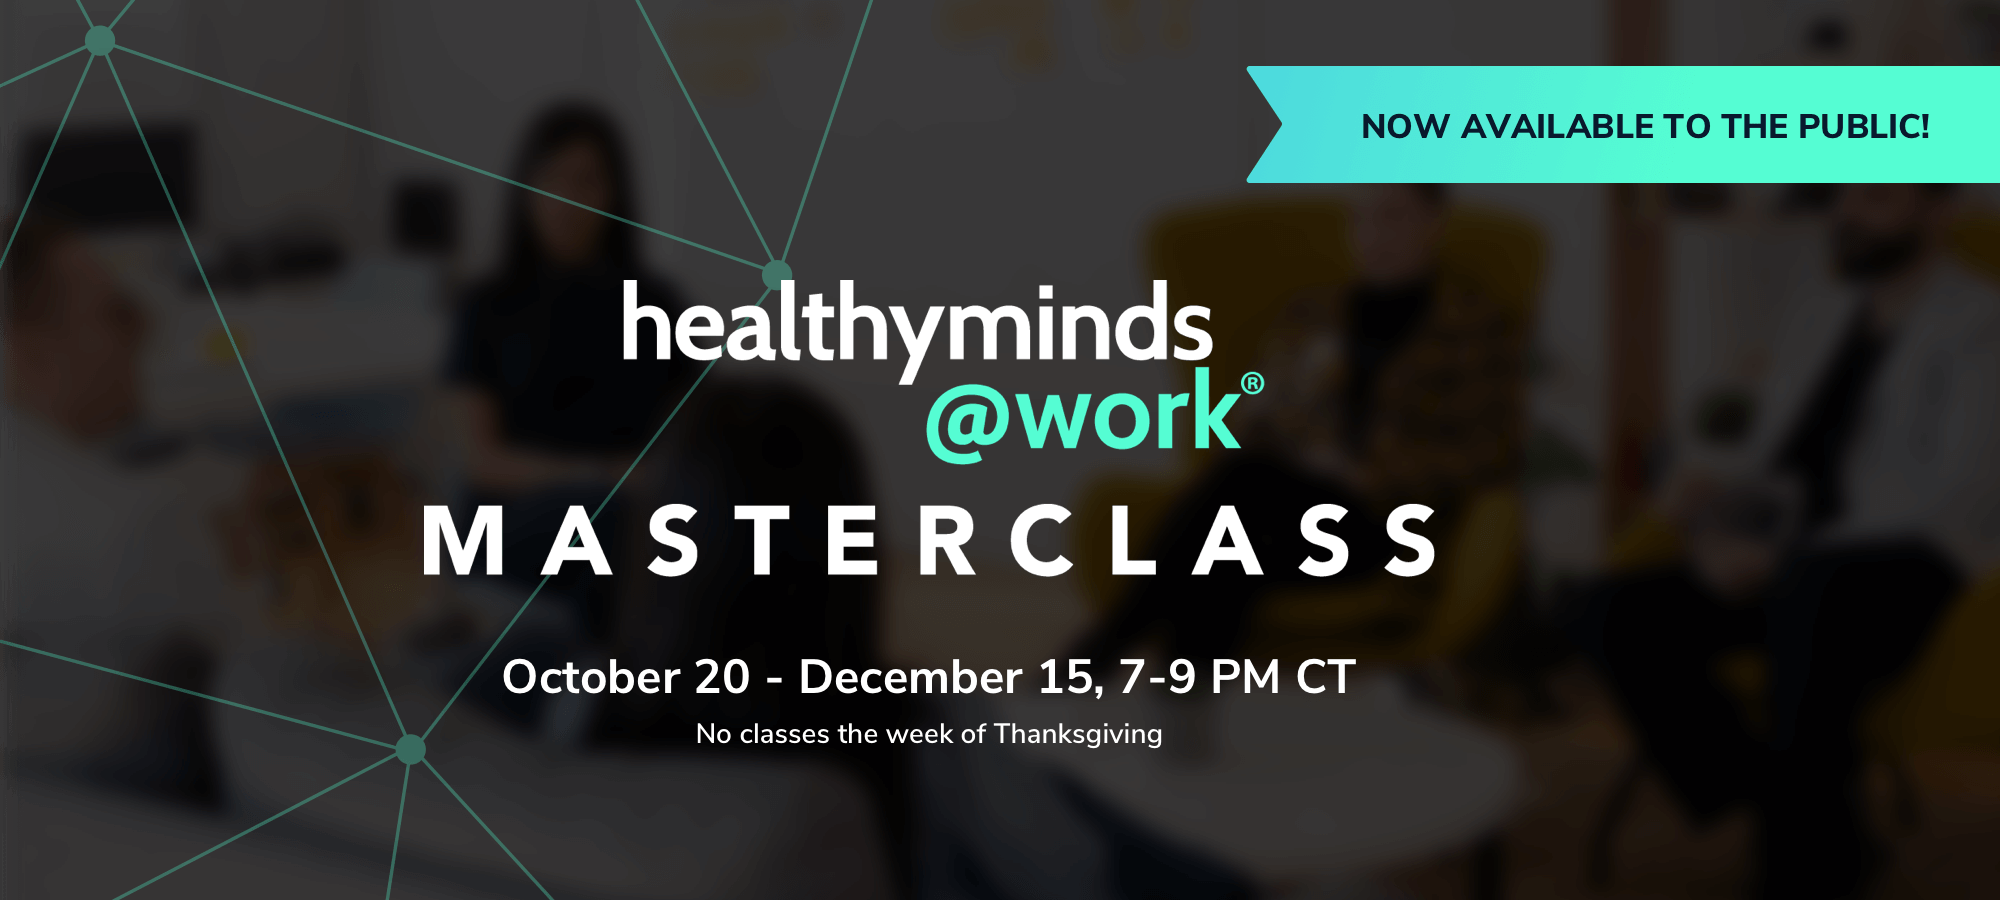 Healthy Minds @Work Masterclass is now available to the public and begins October 20 - December 15 from 7-9PM CT